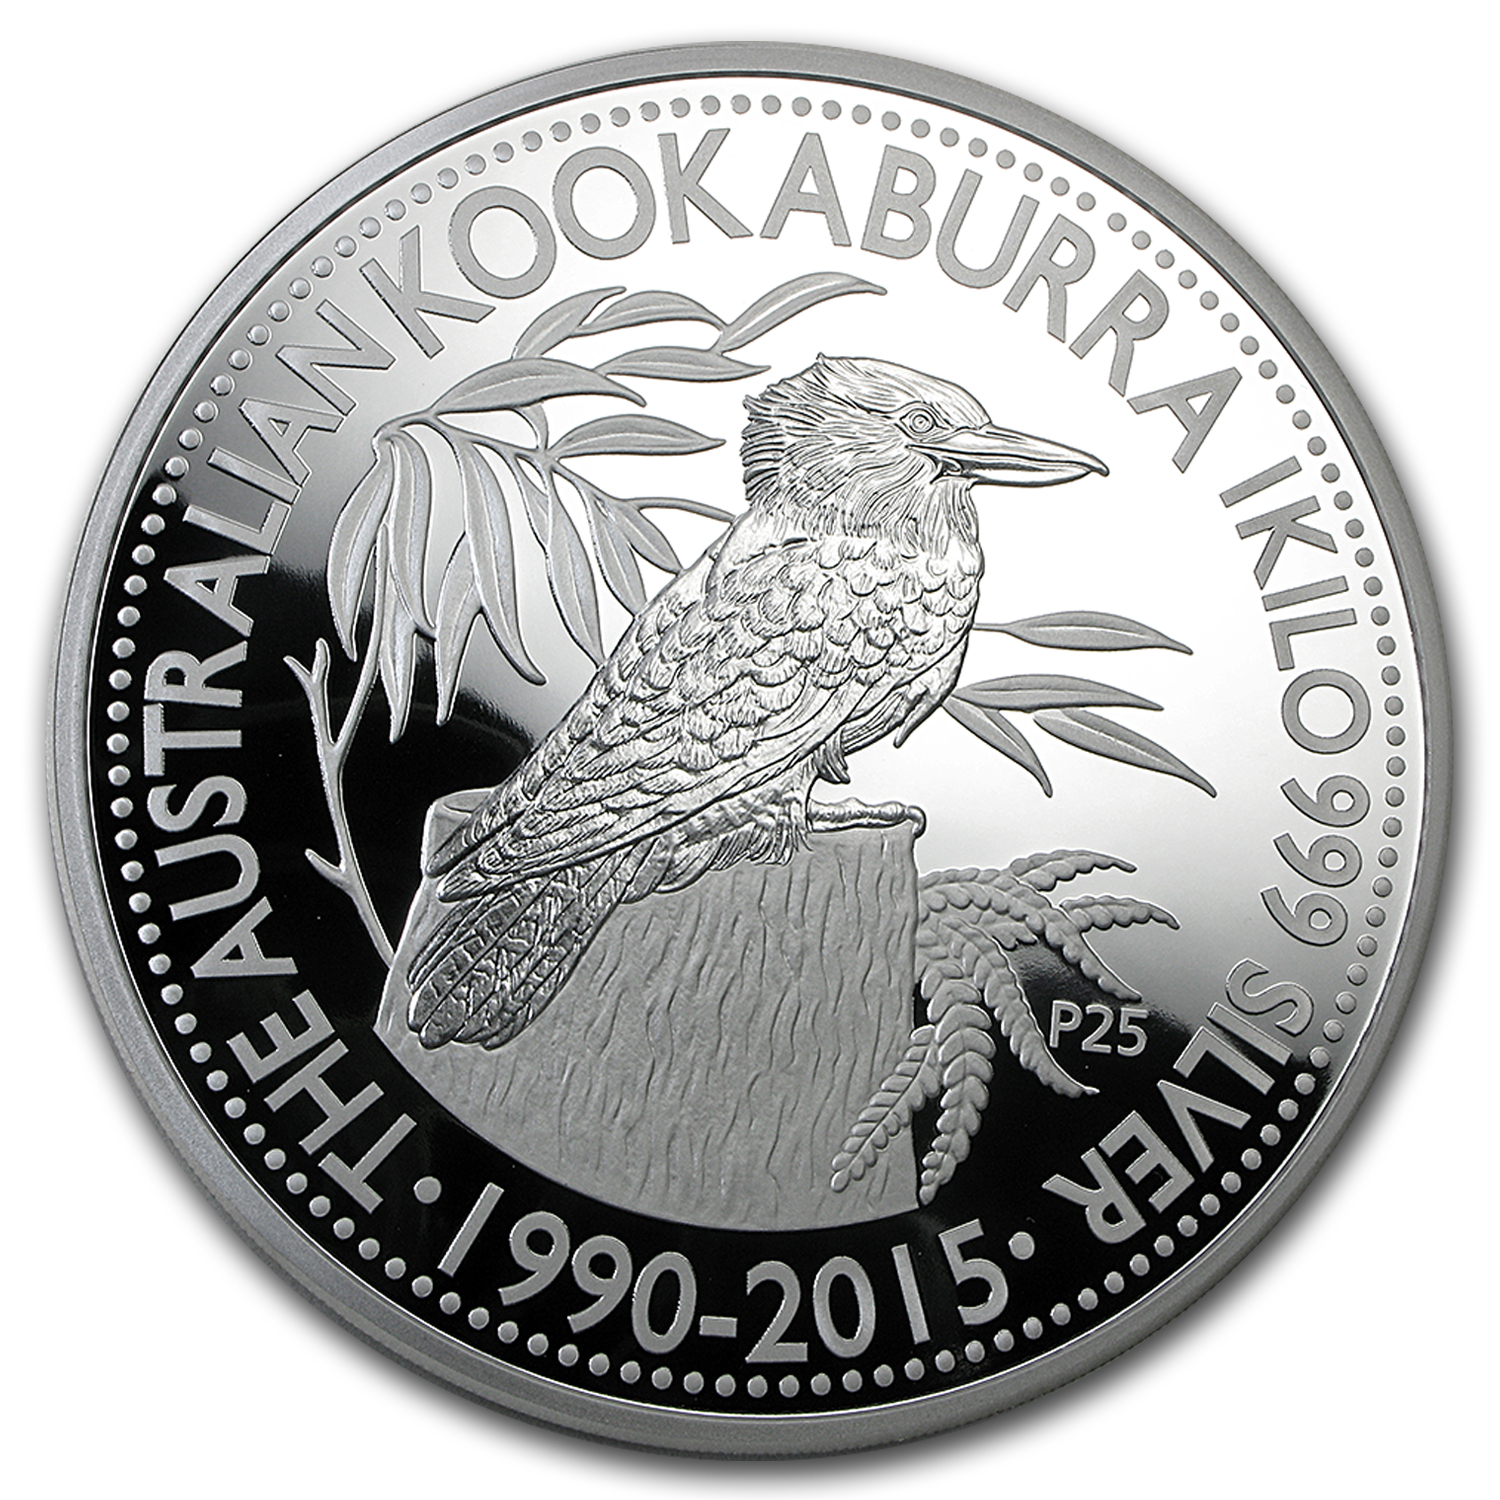 2015 Australia 1 Kilo Proof Silver Kookaburra 25th